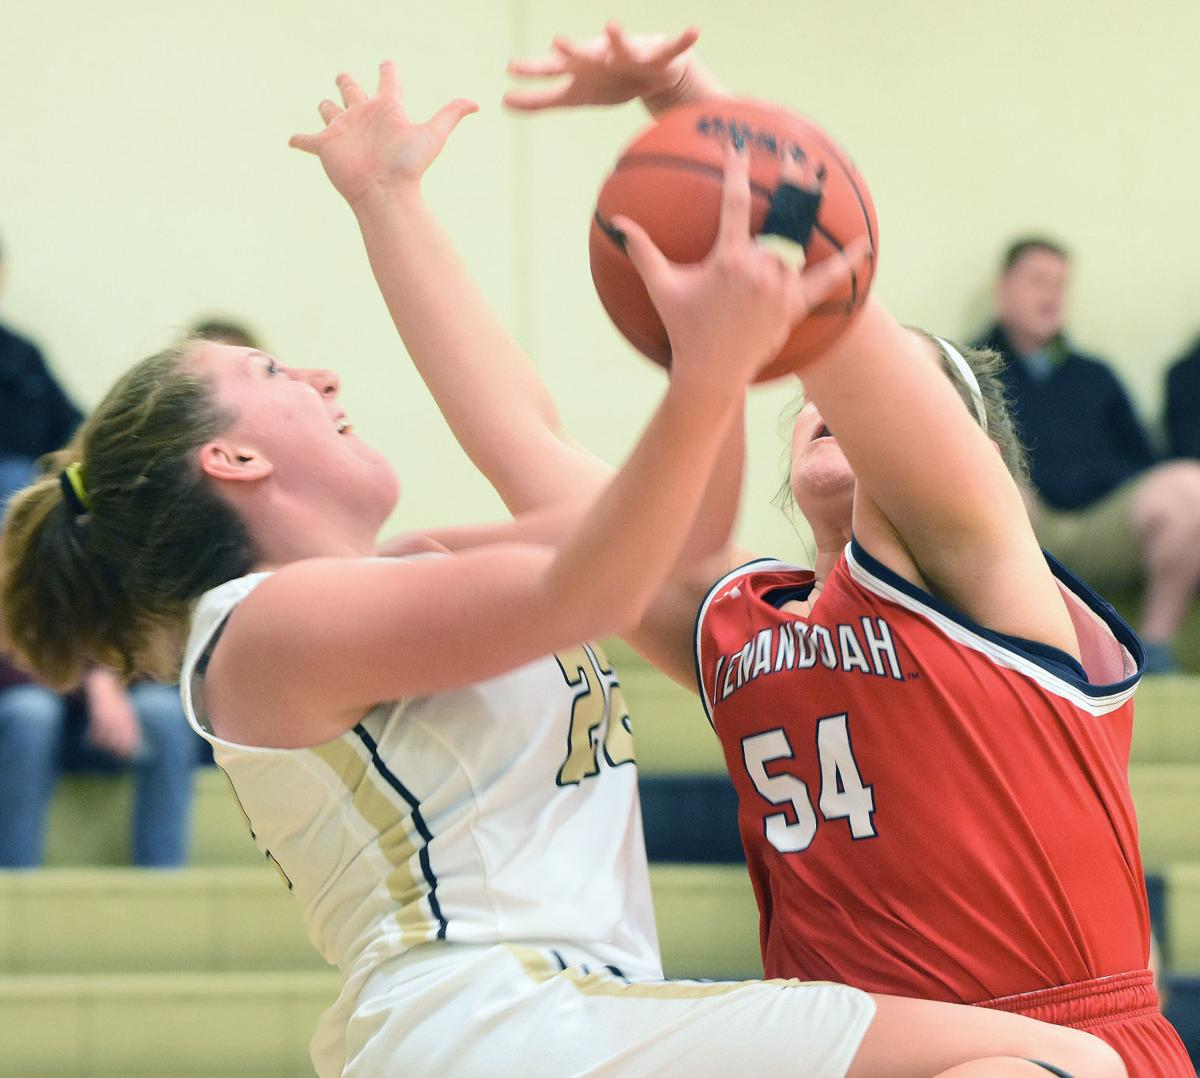 Shenandoah continues its ODAC run with 20-point win over Ferrum